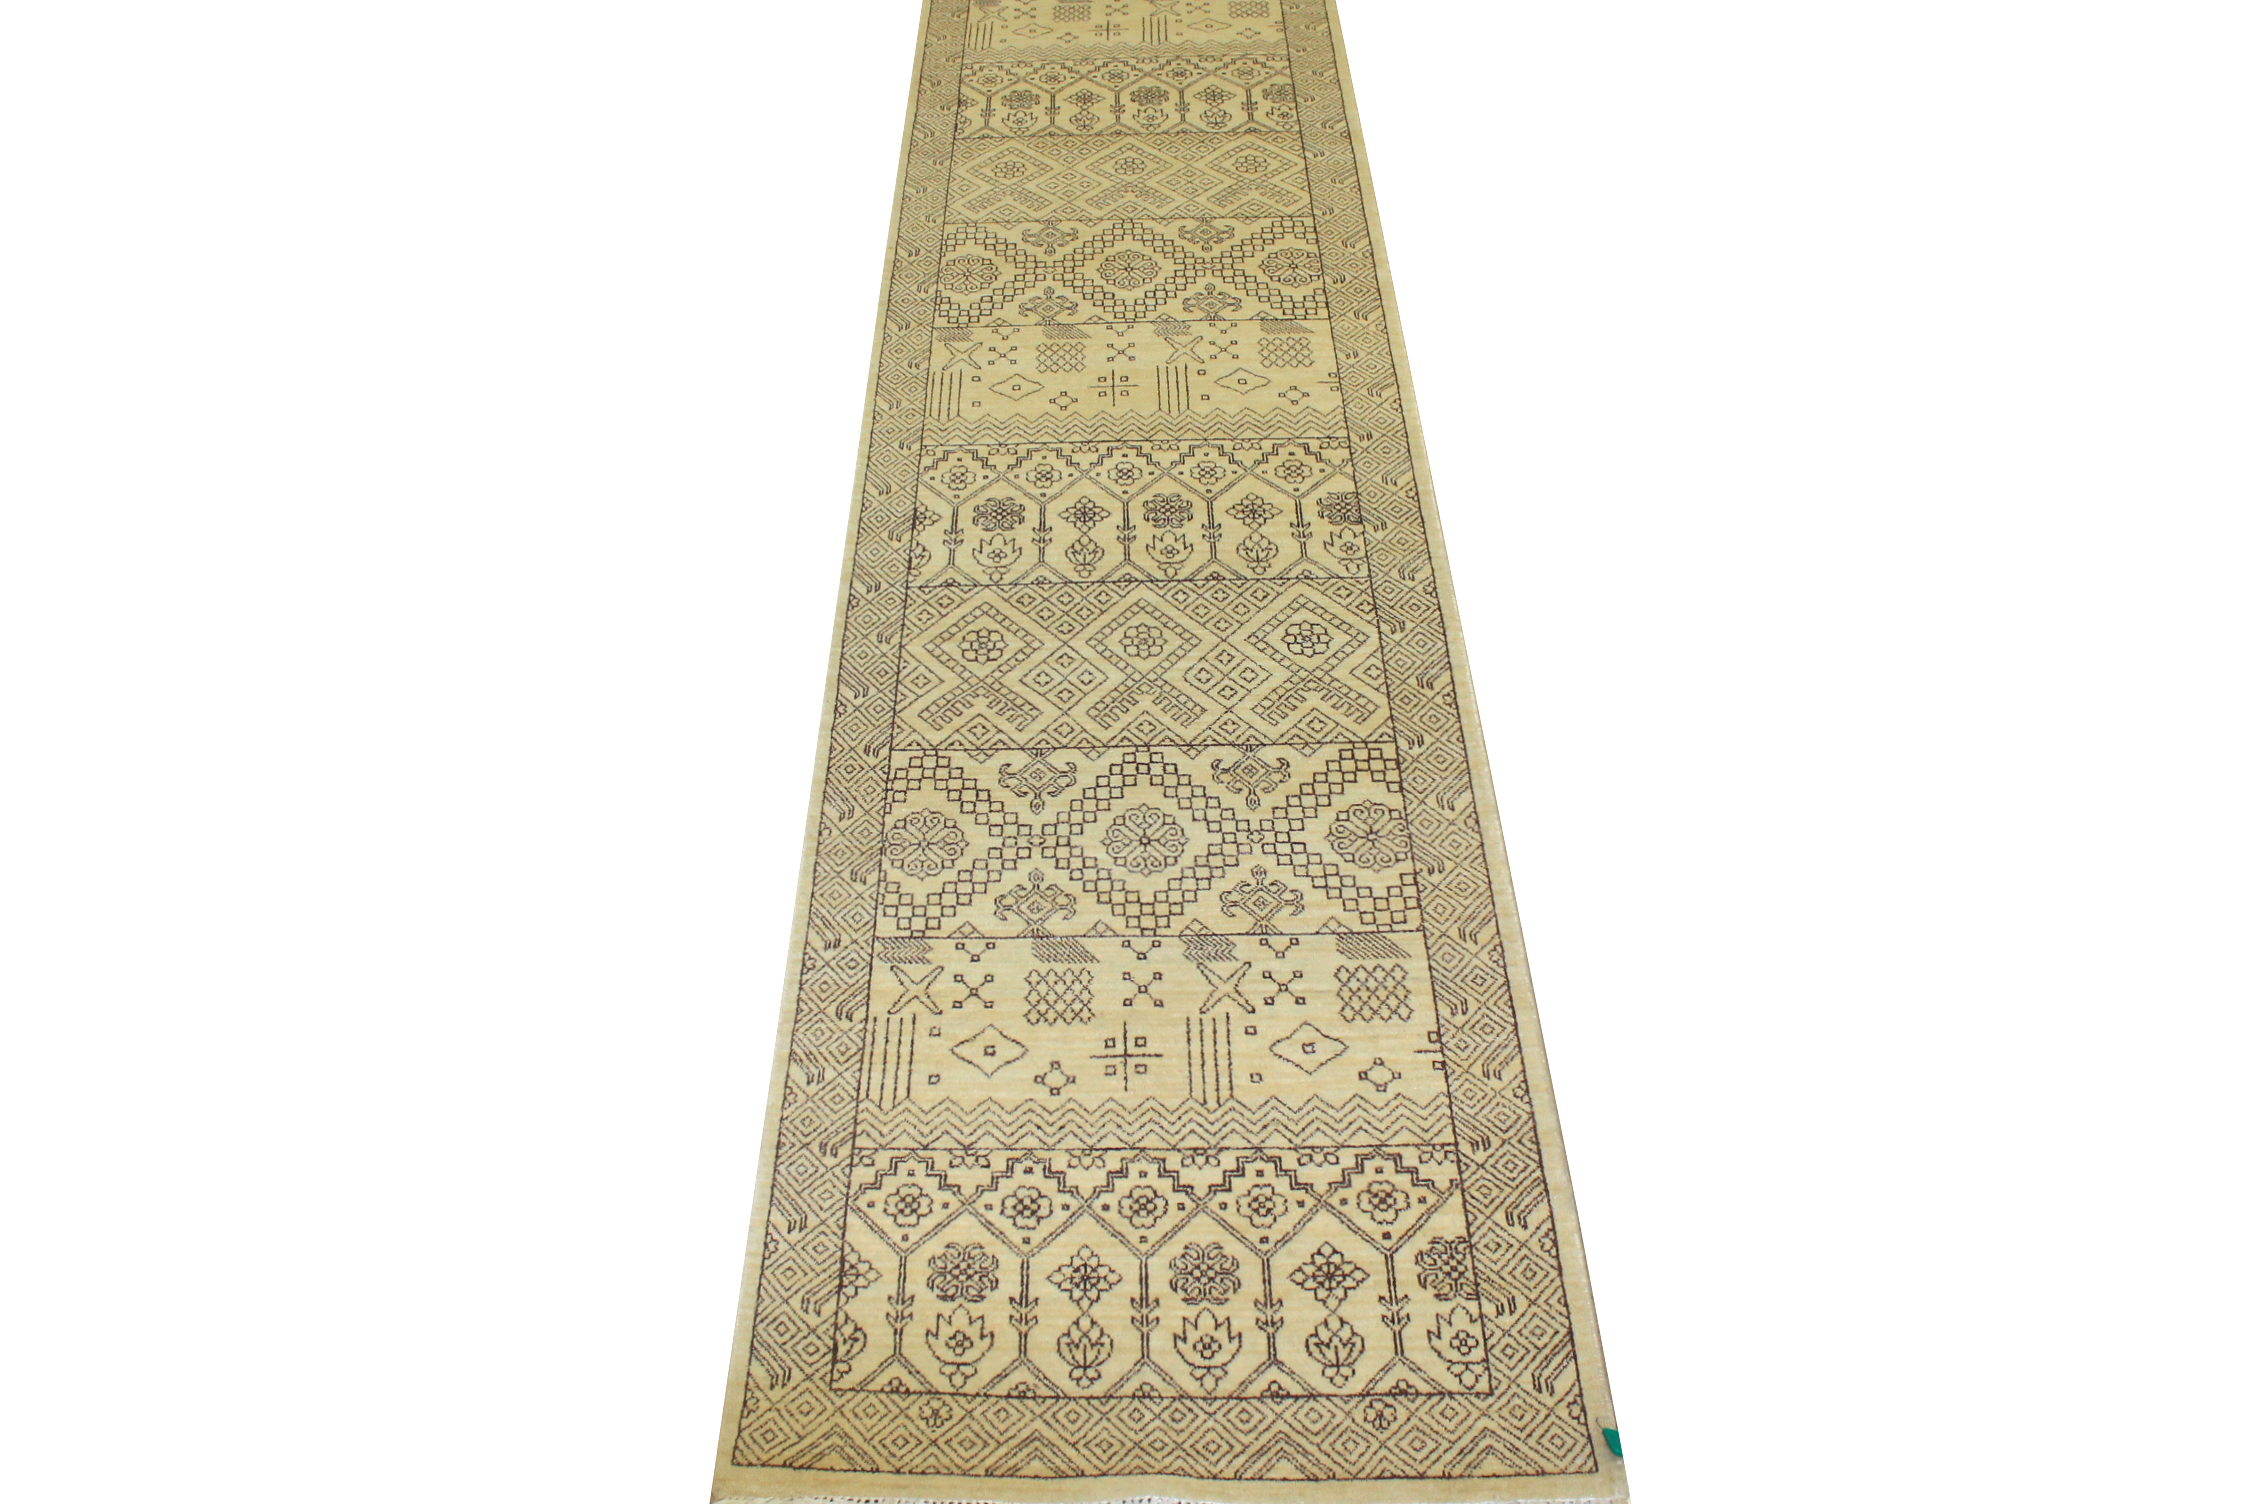 13 ft. & Longer Runner Traditional Hand Knotted Wool Area Rug - MR11740